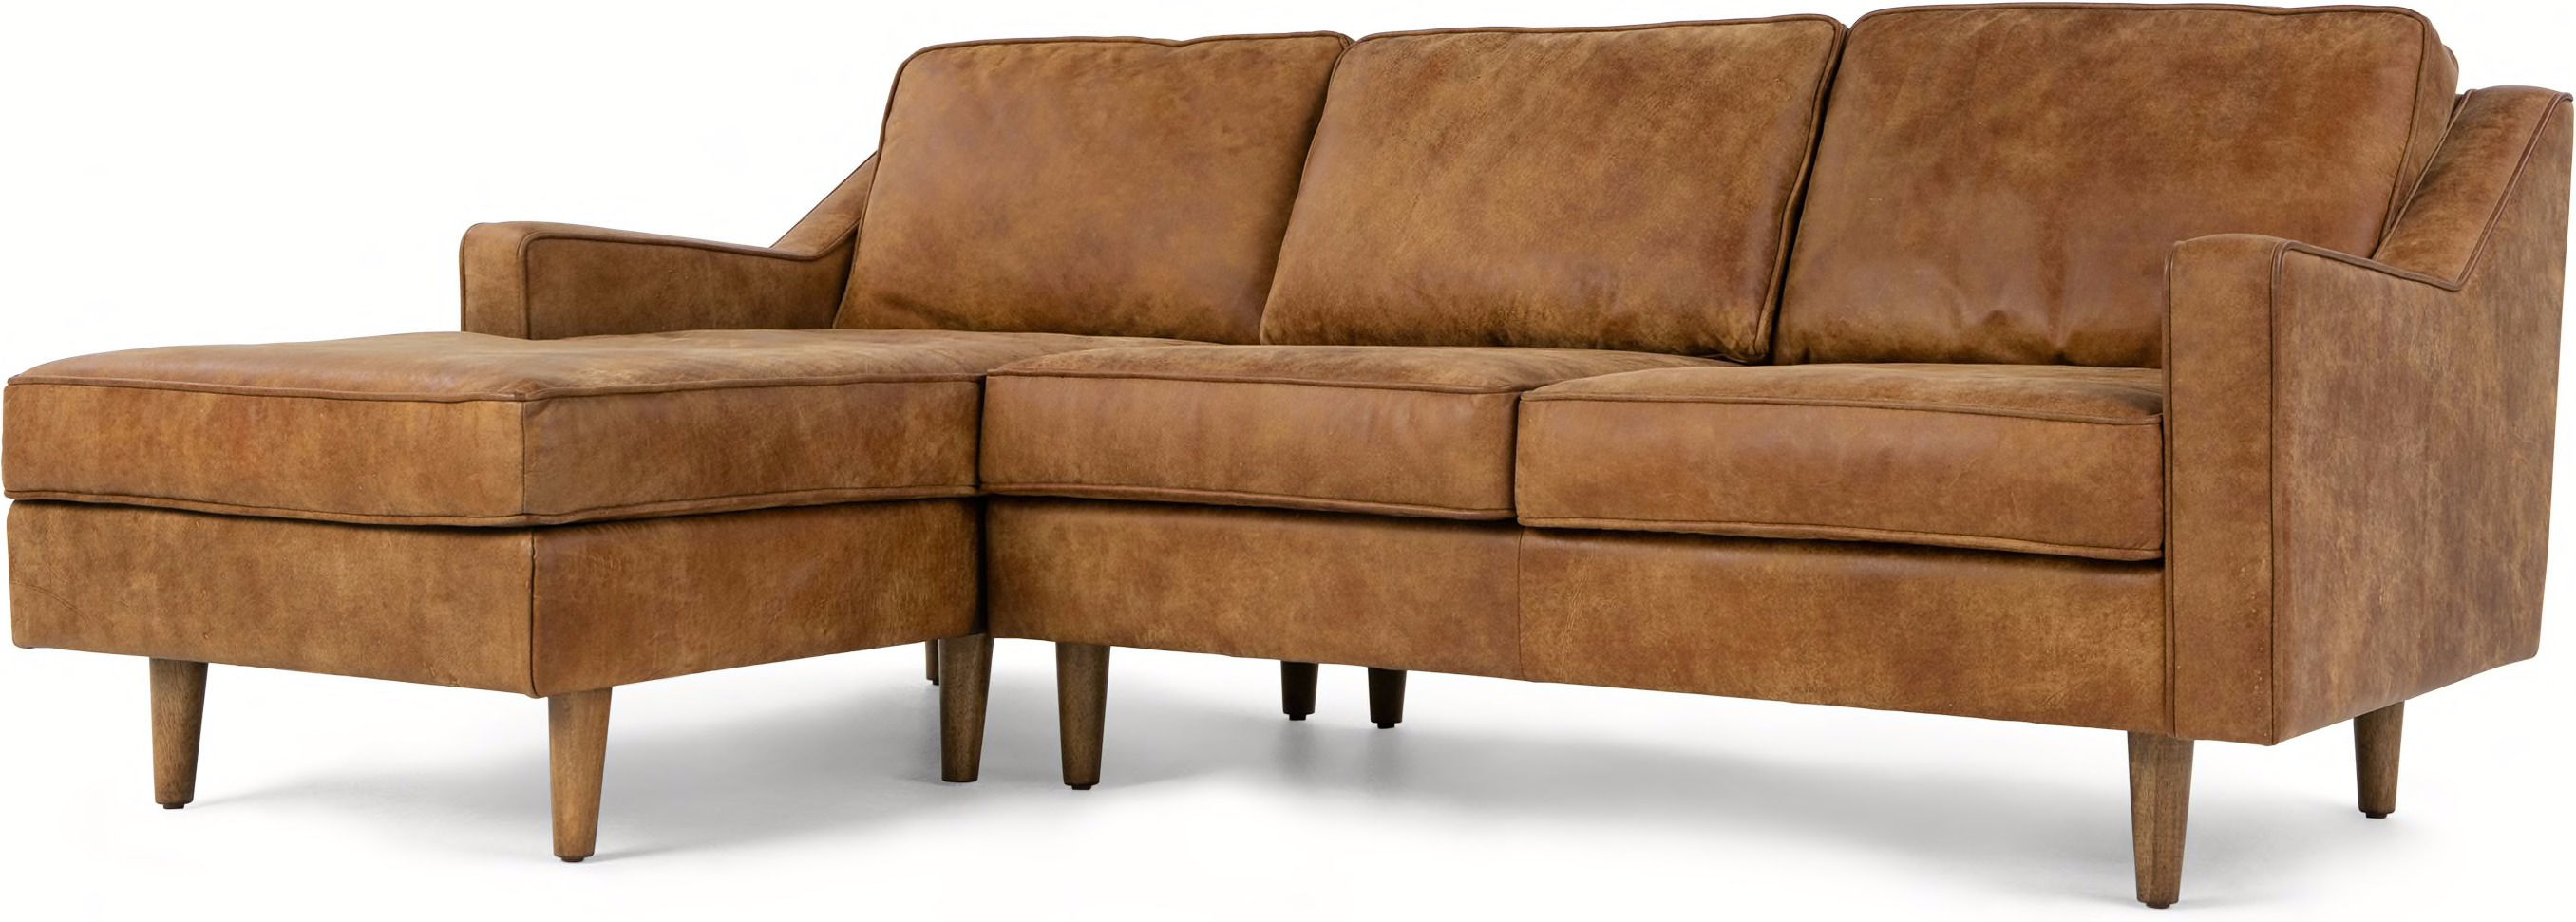 Best leather chaise sofa prices in sofas online for Best chaise couch